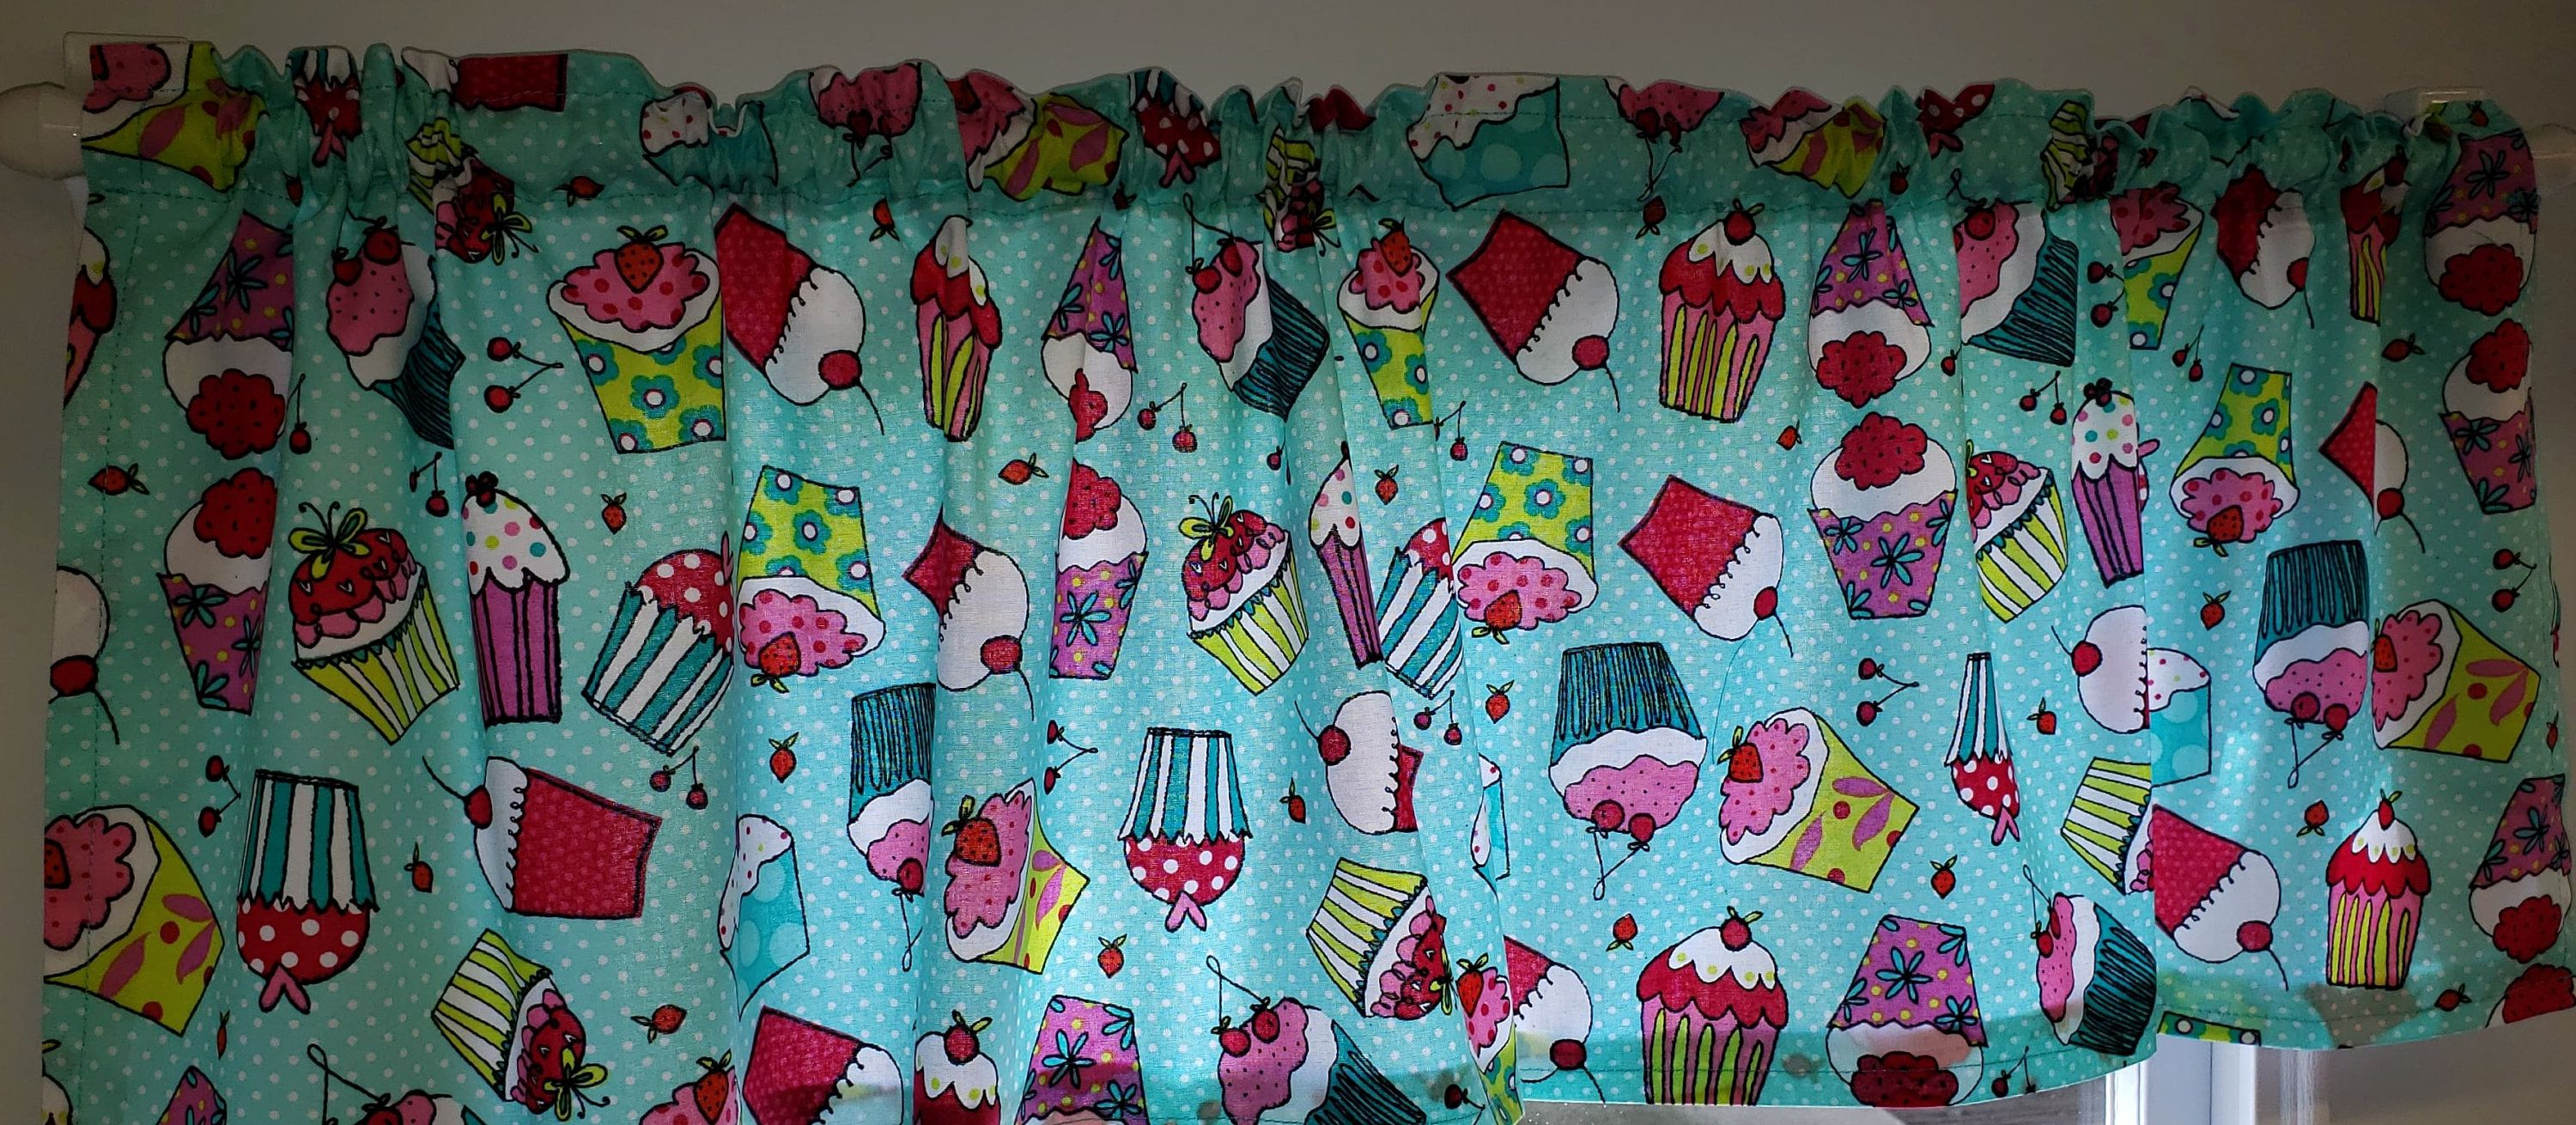 Teal Cupcake Curtains In 2020 Small Curtain Rods Teal Cupcakes Needful Things